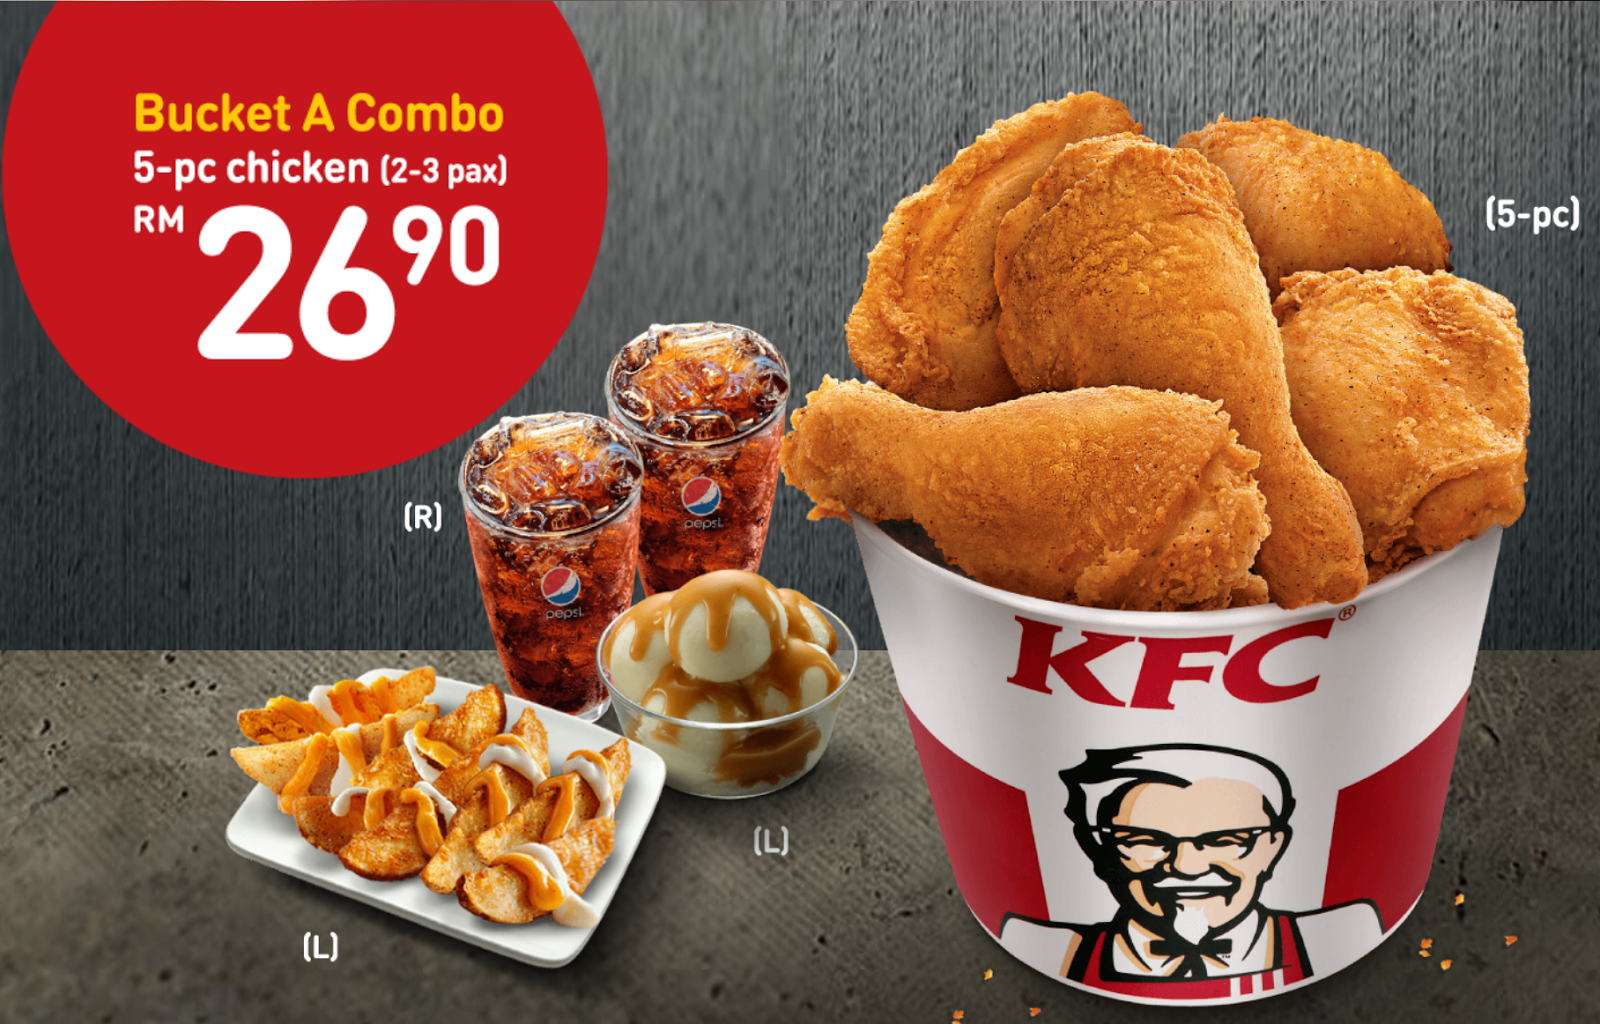 KFC Bucket Berbaloi RM26.90 Value Combo Set With 5-pc ...